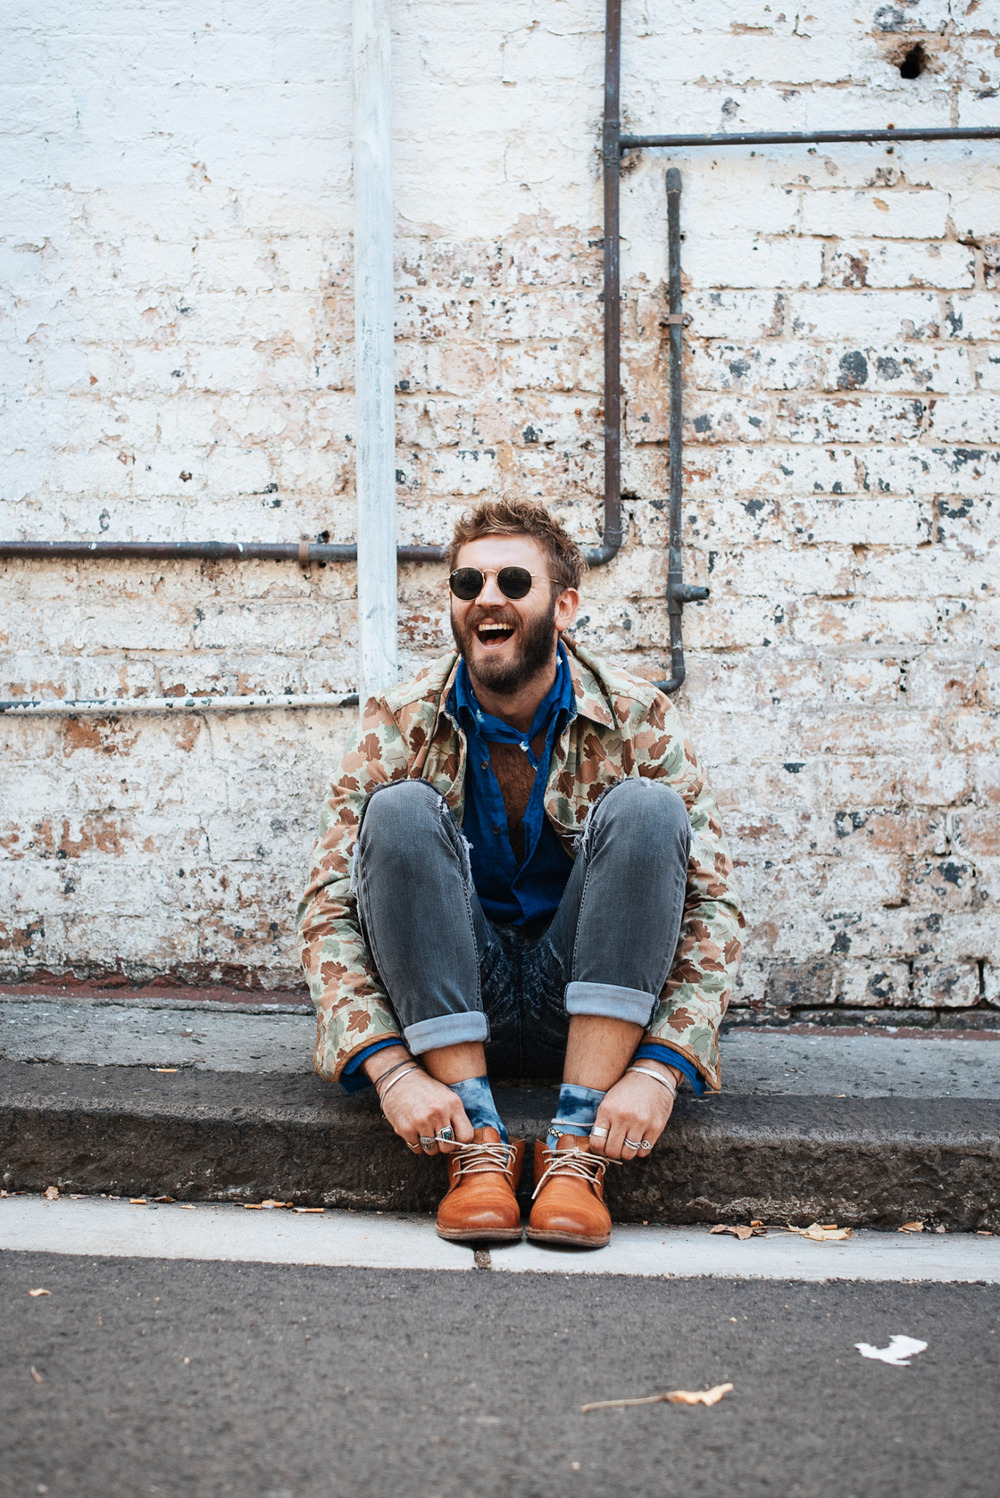 #FINDYOURMAGIC Jules Tognini wears the blue bandana and tie-dye socks from his Find Your Magic Collection, available exclusively at The MITT Mrkt. All proceeds from the Find Your Magic Collection will be made to LYNX's charity partner, I-Manifest.